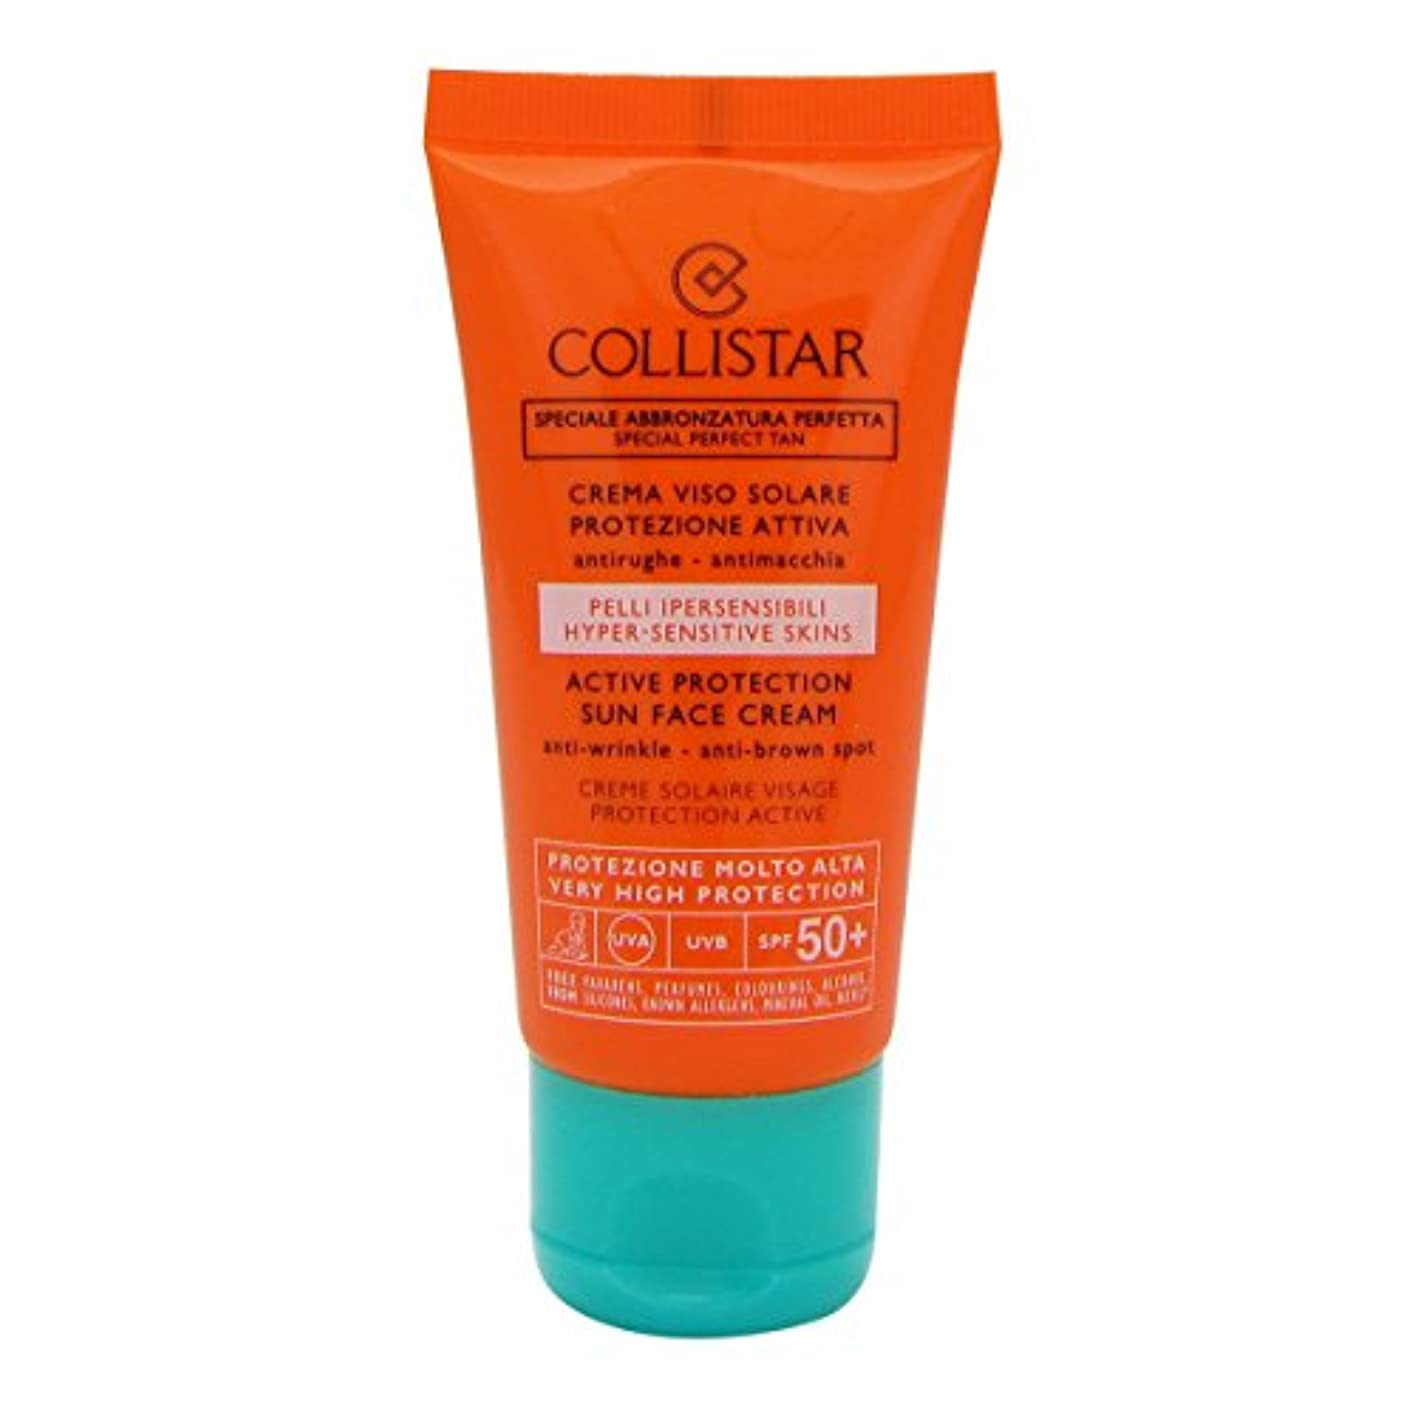 Collistar Special Perfect Tan Active Protection Sun Face Cream Spf50+ 50ml [並行輸入品]